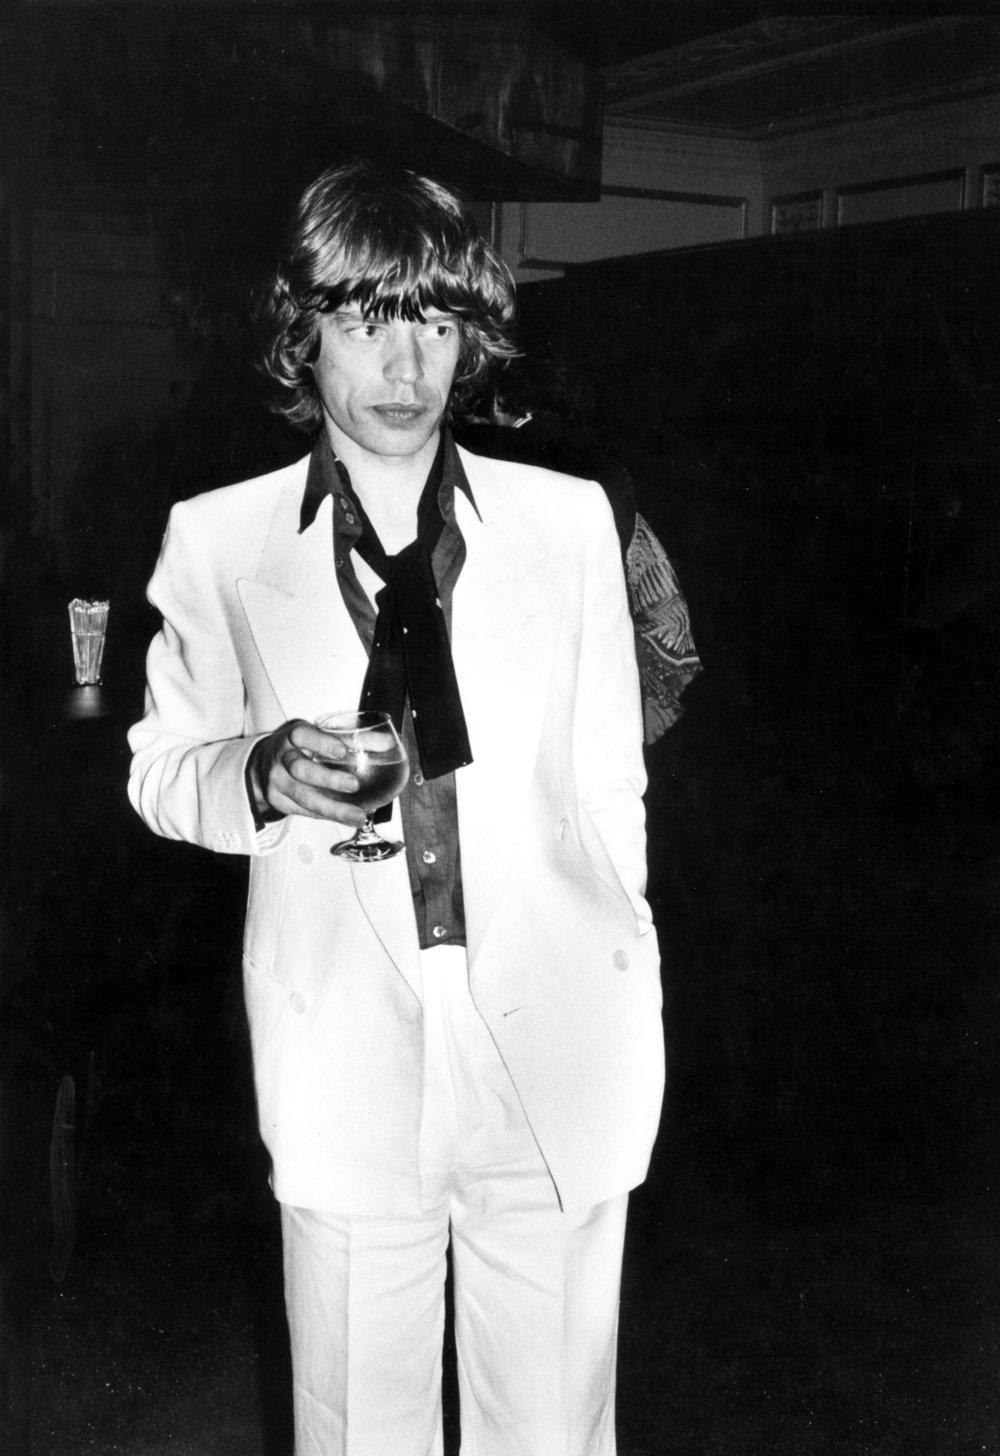 Rose Hartman - Mick Jagger at Bianca's birthday.jpeg